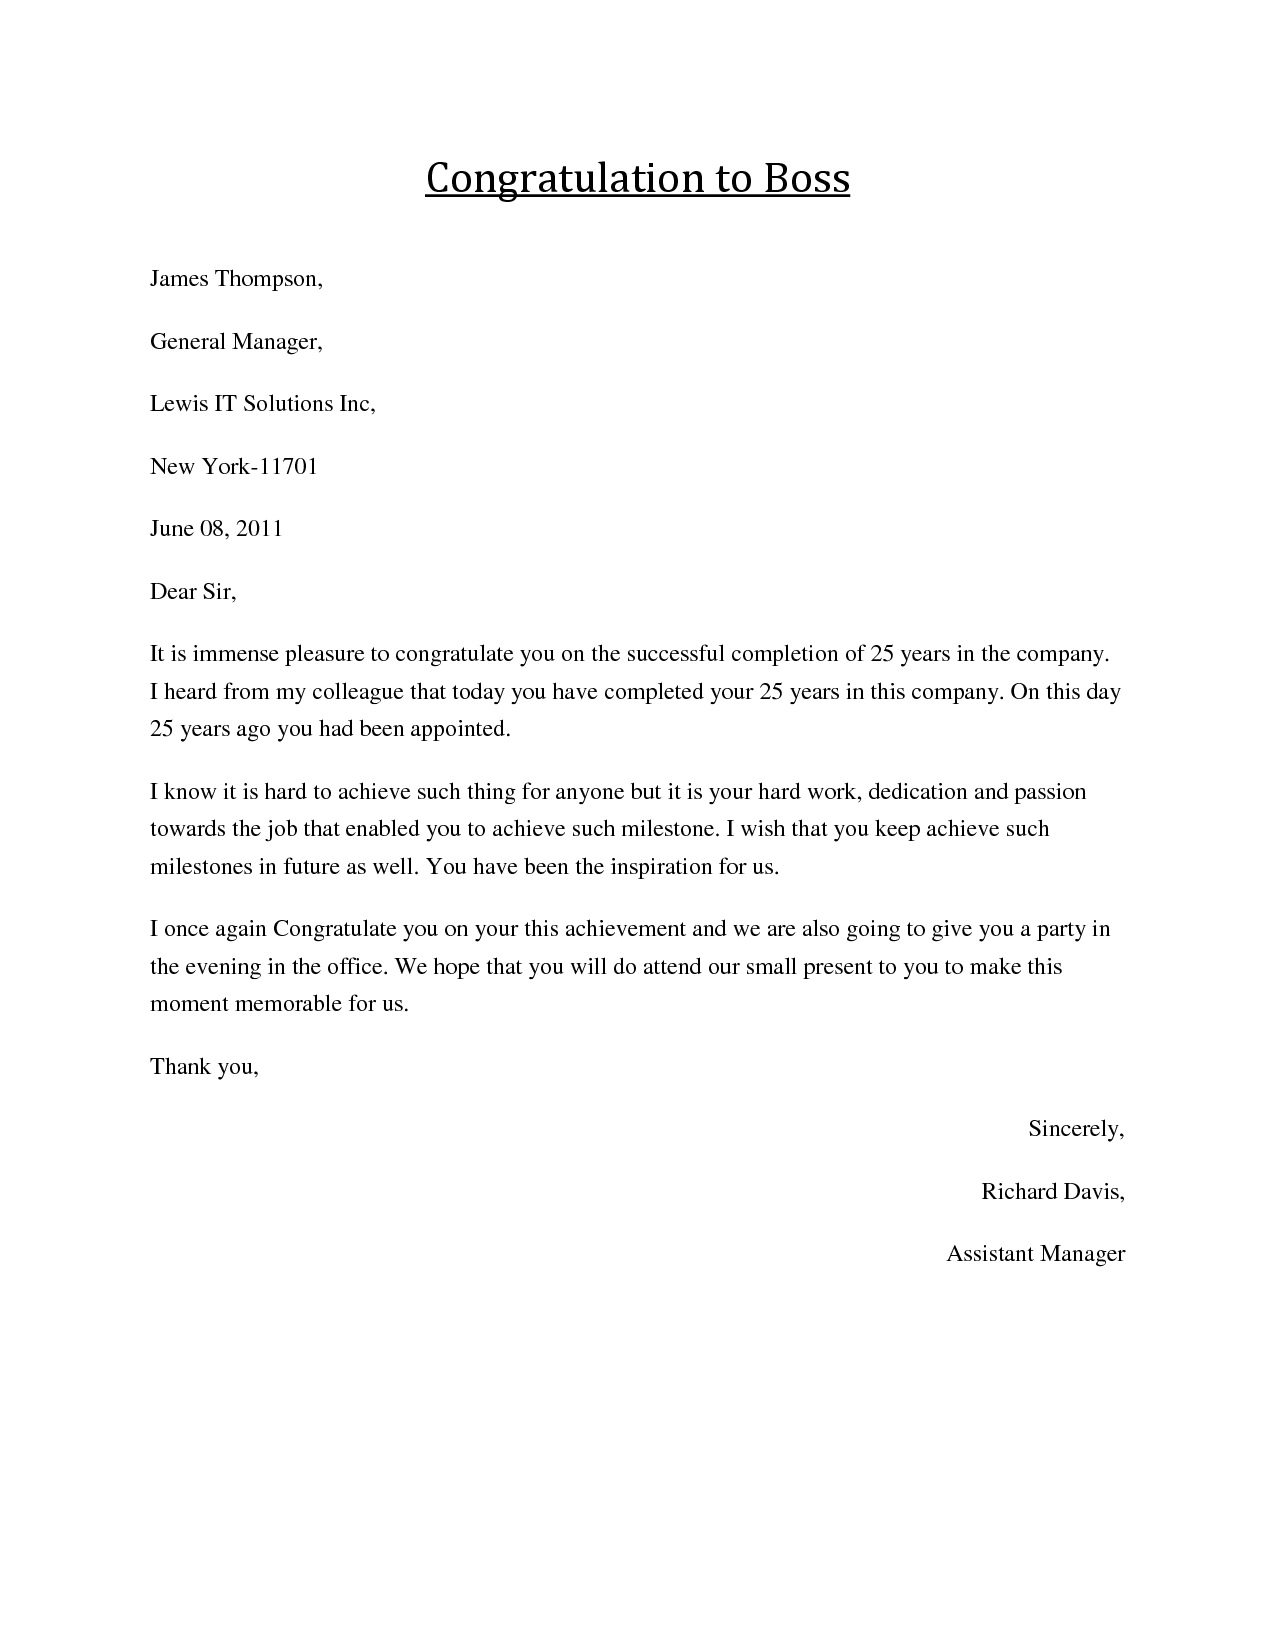 Congratulations letter to boss job congratulations formal congratulations letter to boss job congratulations formal business letters and greeting messages to boss spiritdancerdesigns Image collections